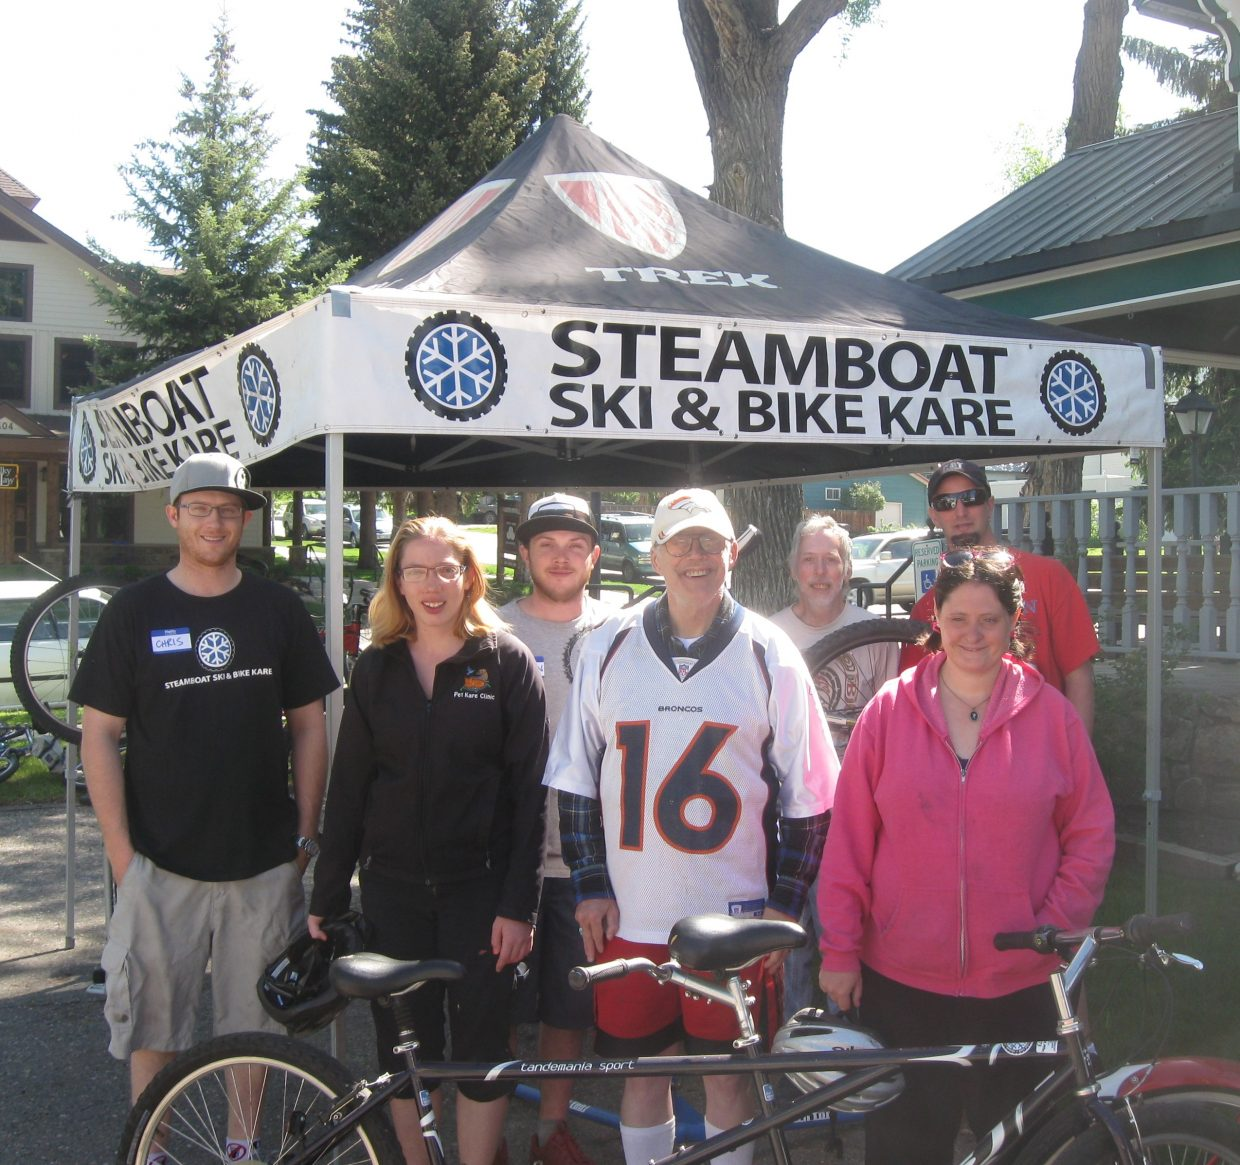 Steamboat Ski & Bike Kare technicians Chris Katers and Brandon Thorton pause to pose with a group from Horizons Specialized Services. The bike technicians volunteered their time to tune bicycles for individuals with disabilities.